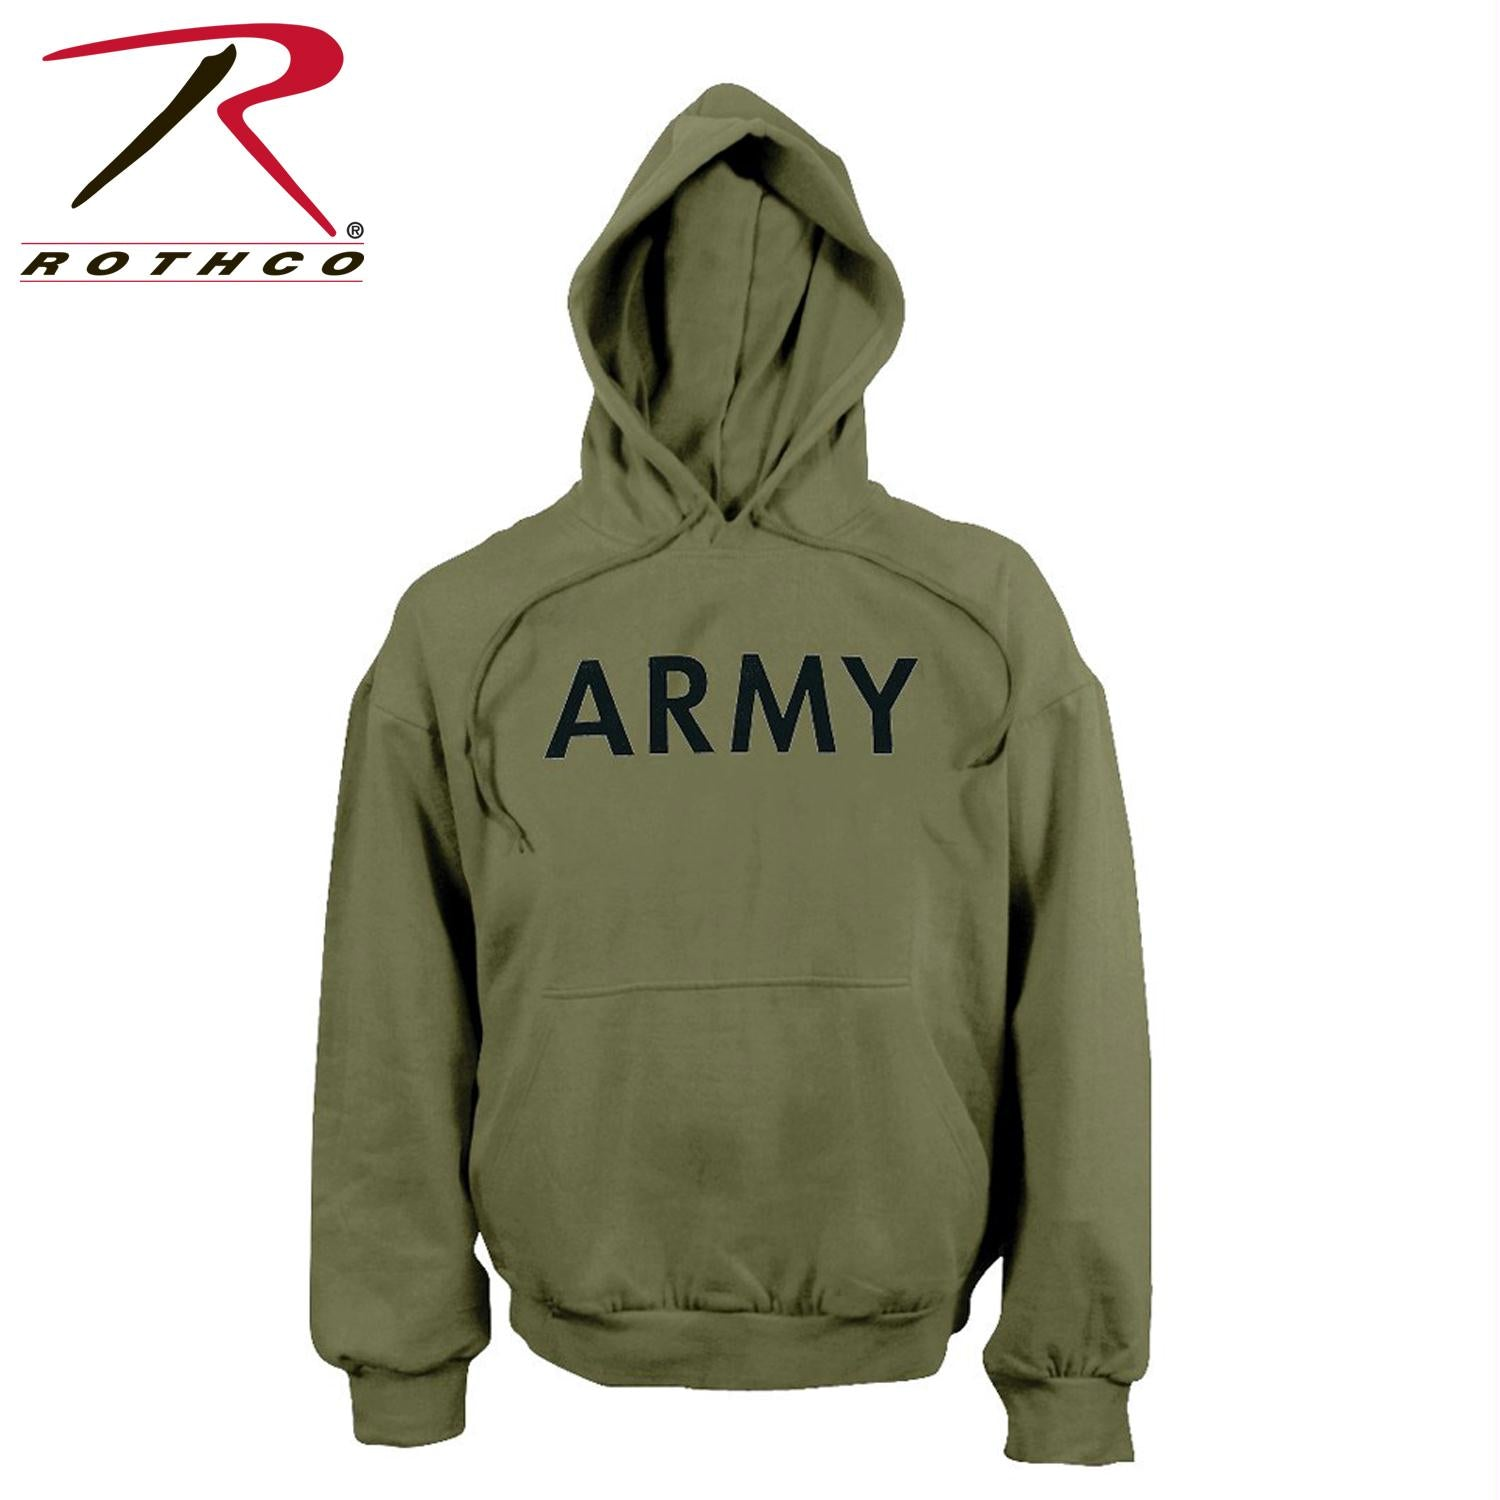 Rothco Army PT Pullover Hooded Sweatshirt - Olive Drab / XL